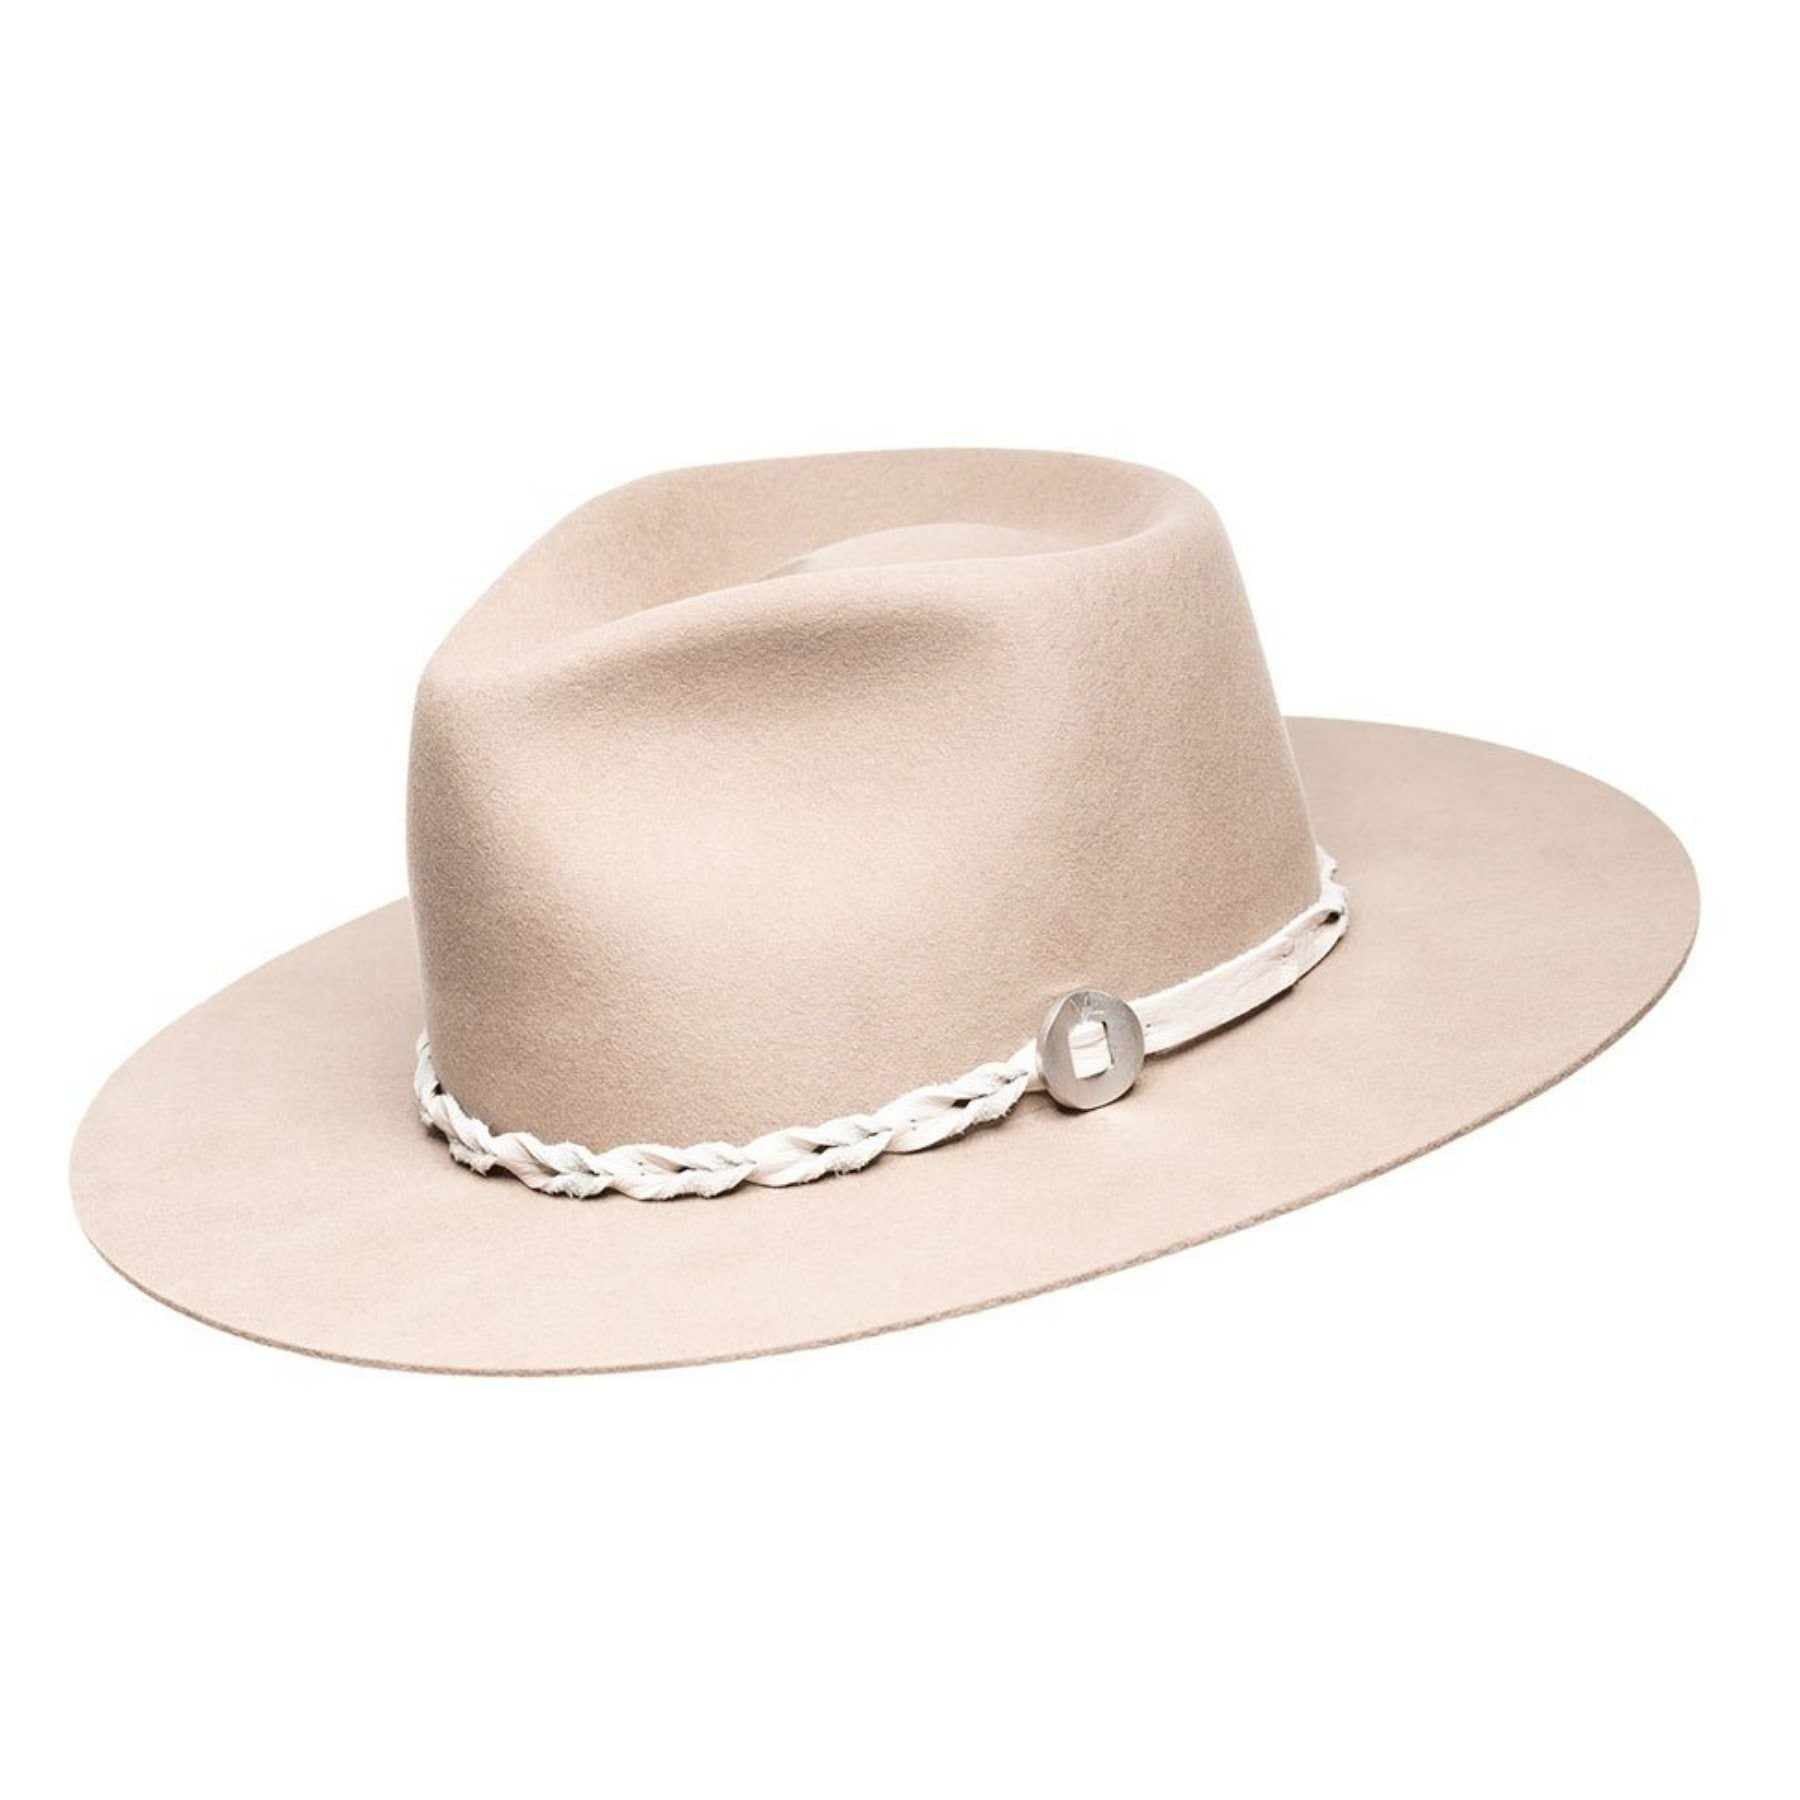 Finn Wide Stiff Brim Hat - Tan Mist